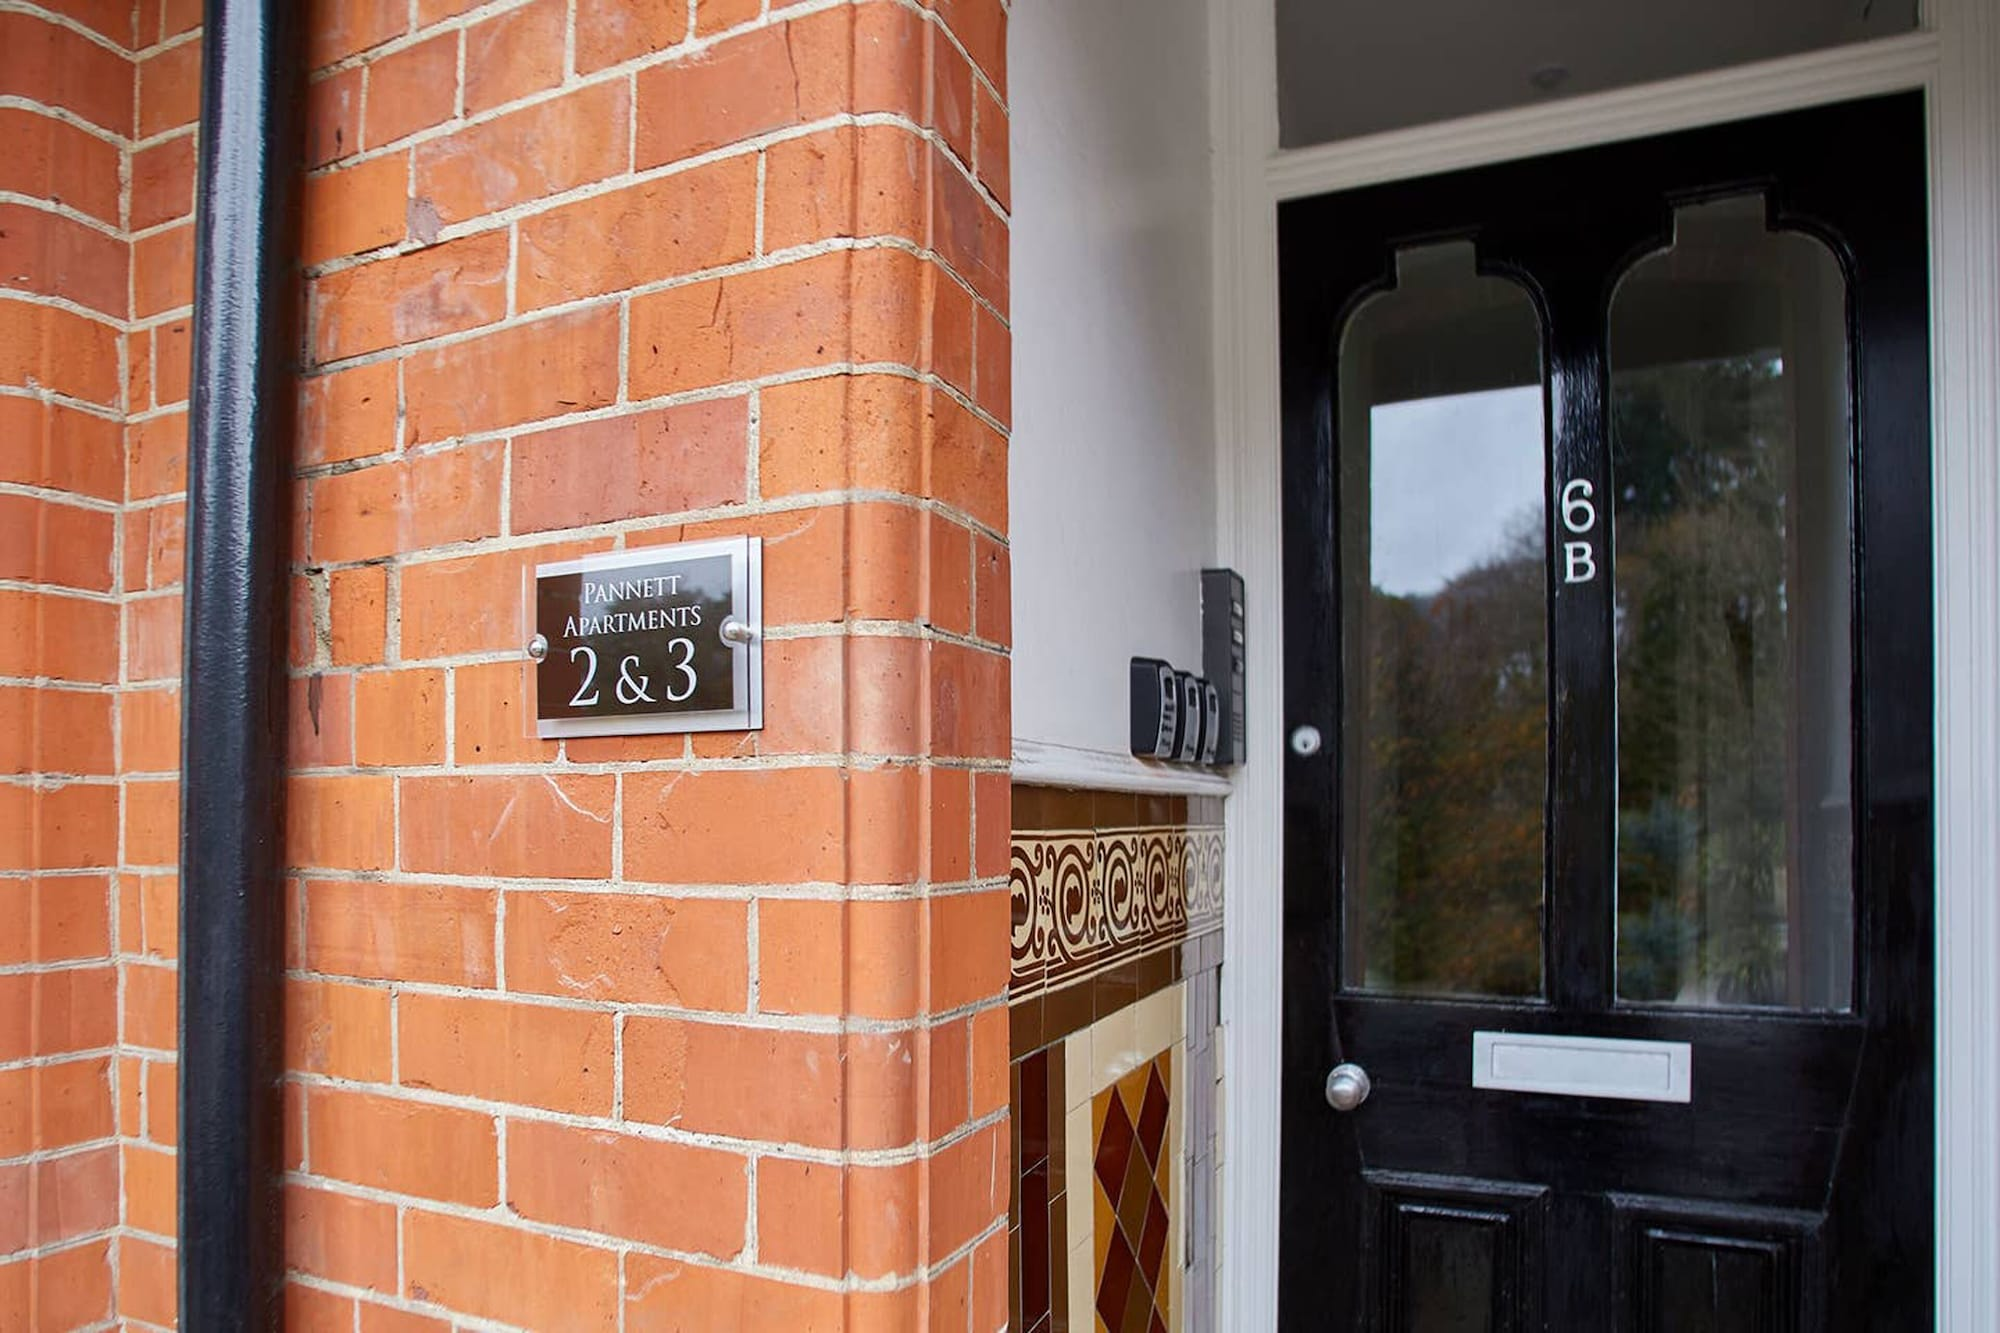 Number 3 at Pannett Apartments, North Yorkshire